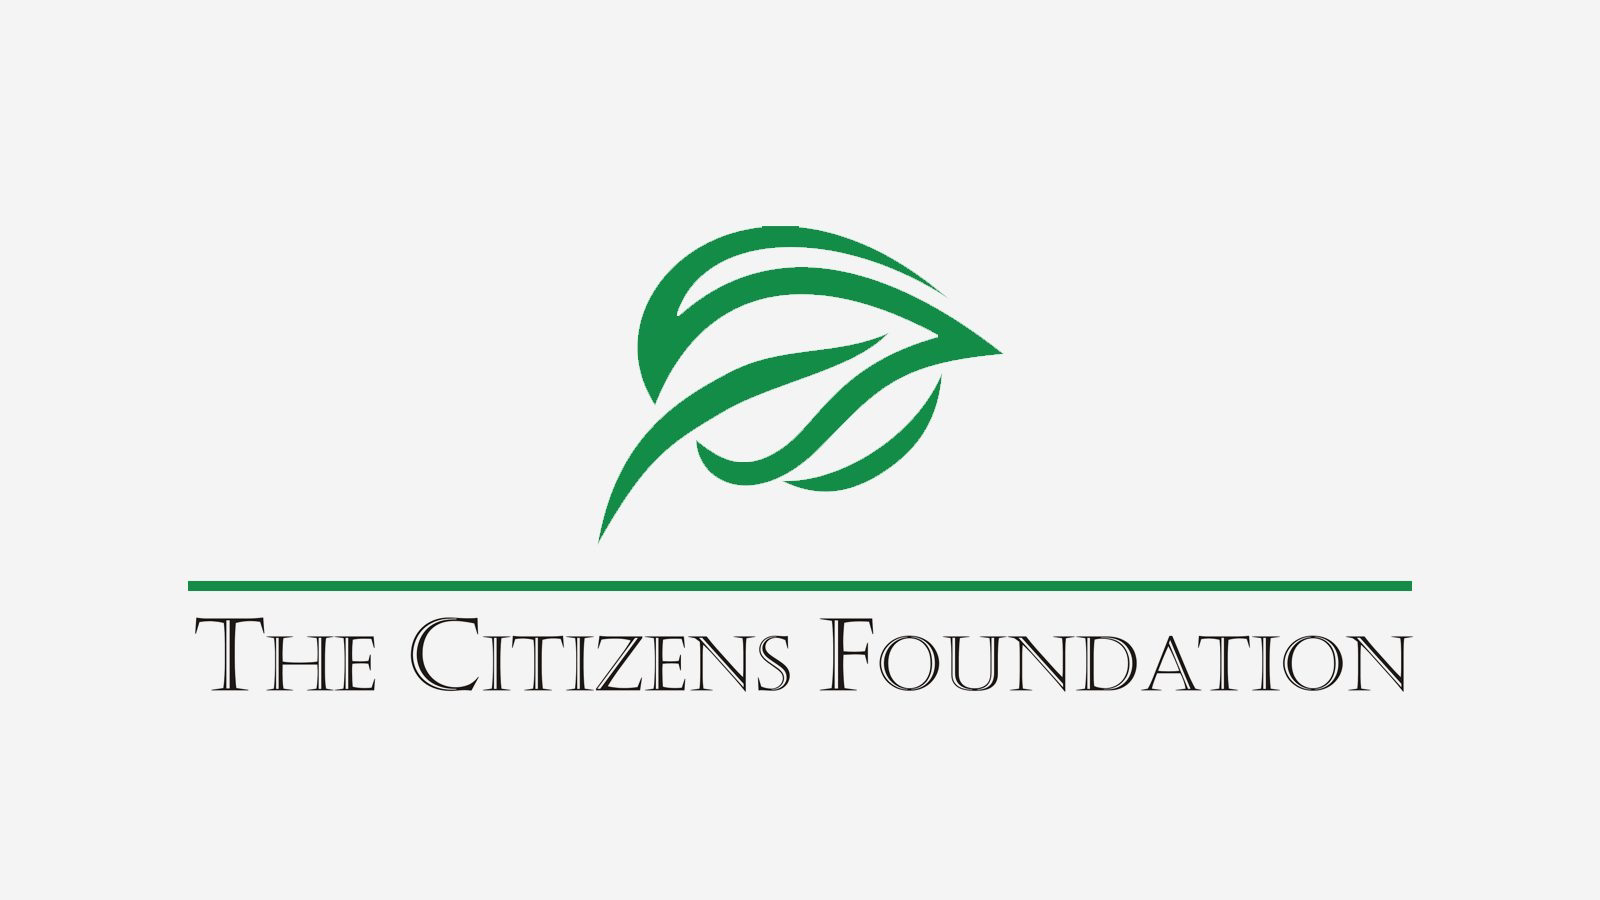 Buckle & Seam joins hands with The Citizens Foundation (TCF) to Support education for the less Privileged